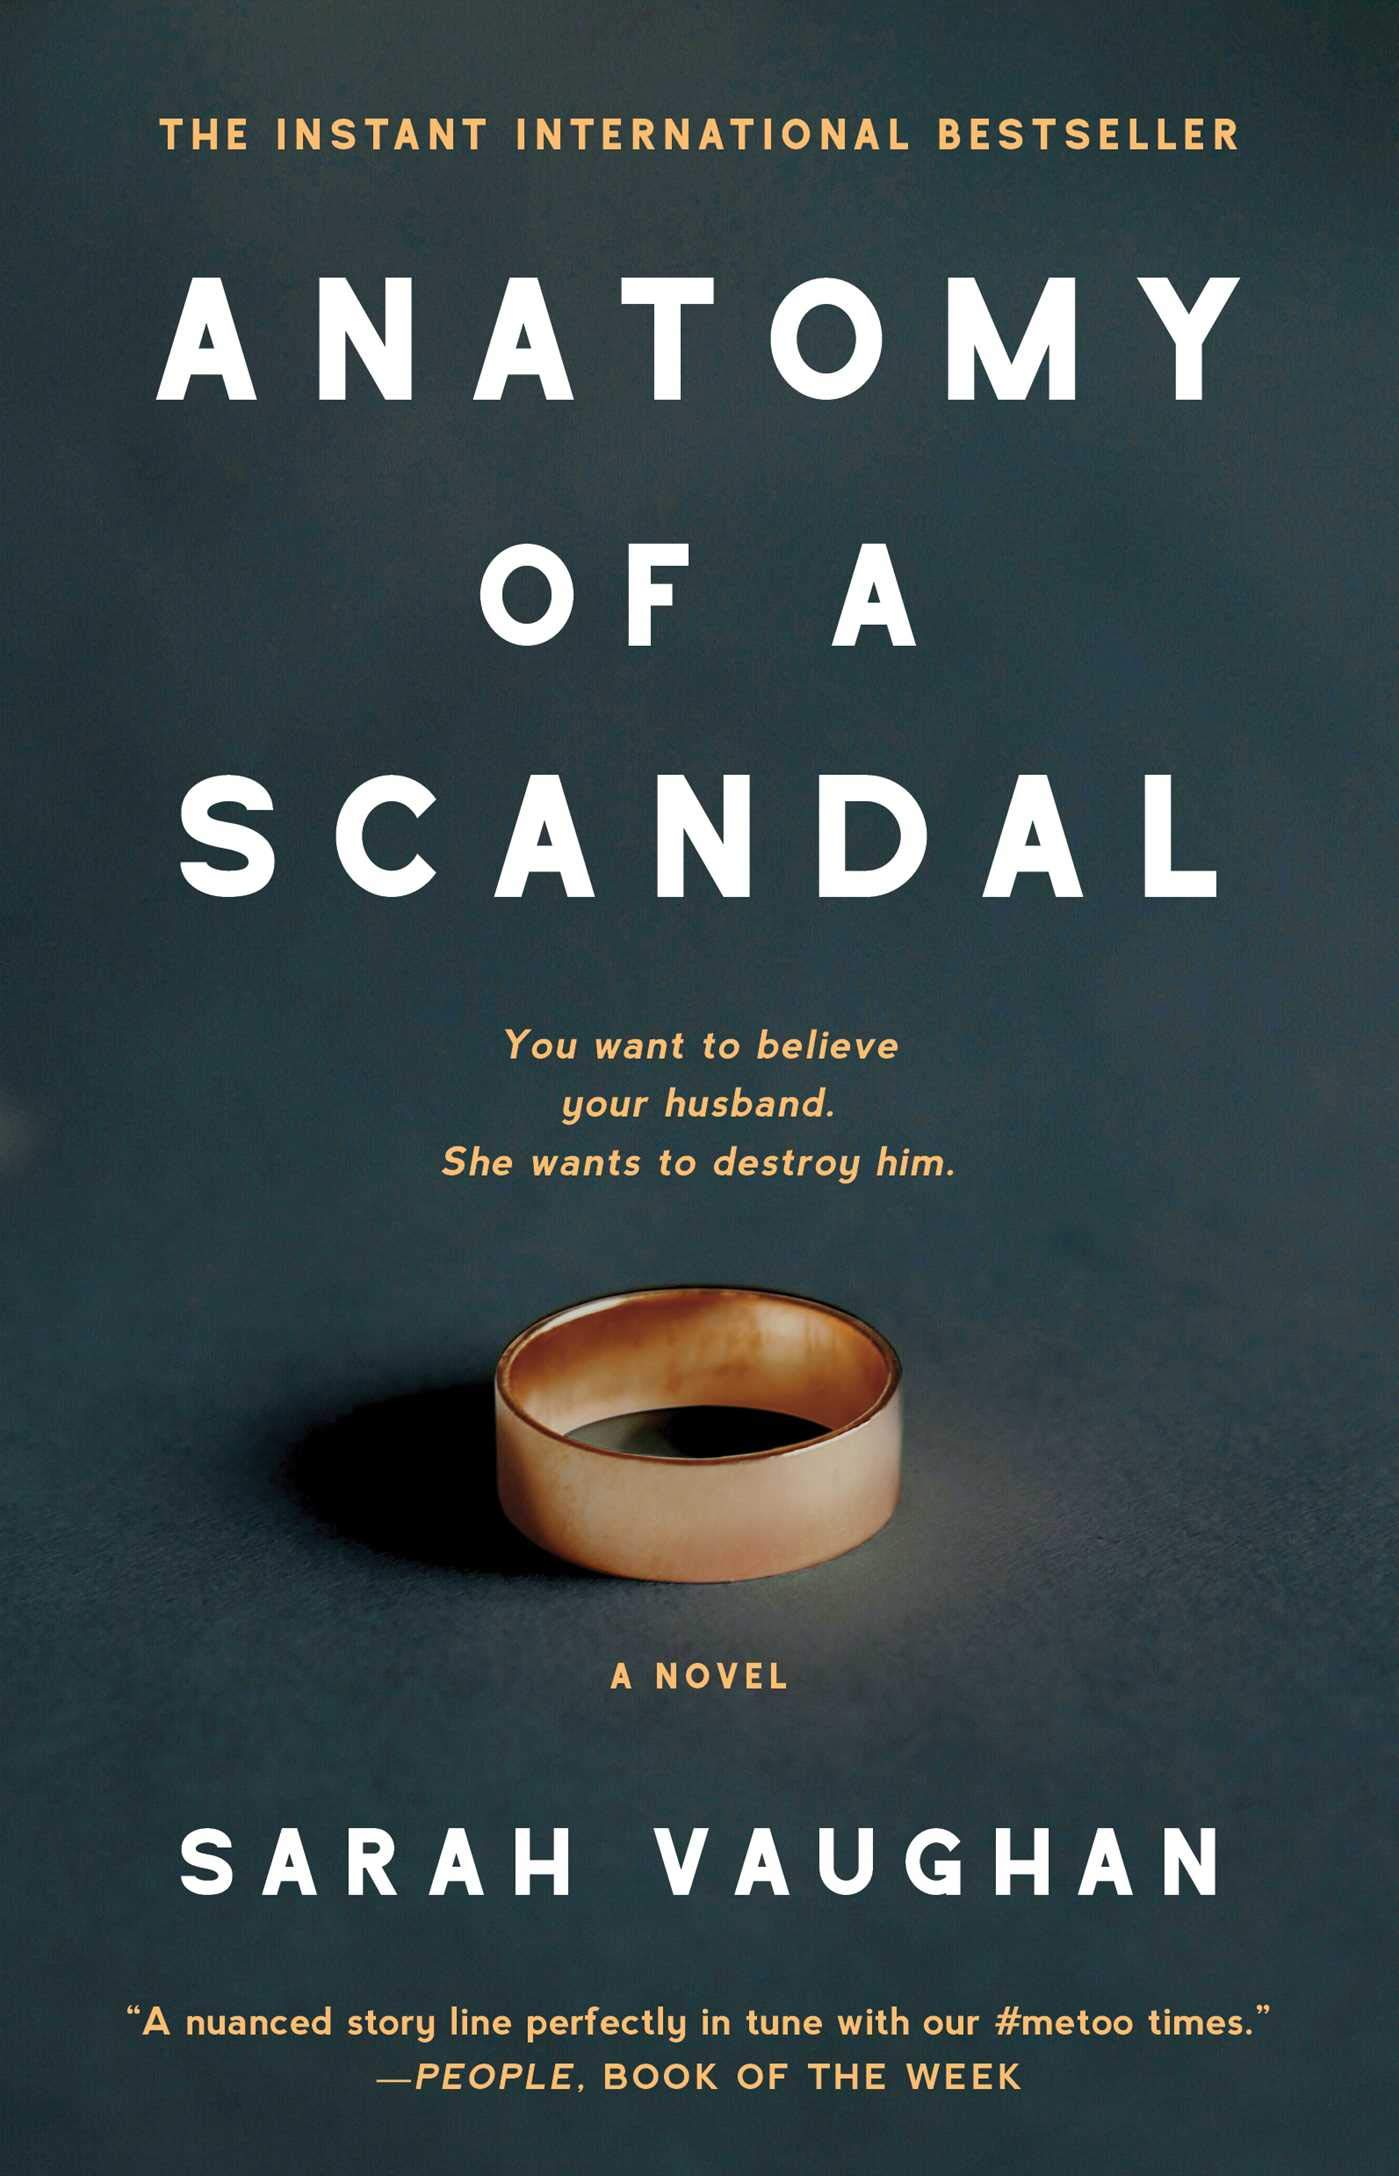 Anatomy of a Scandal: Amazon.co.uk: Sarah Vaughan: 9781501172175: Books